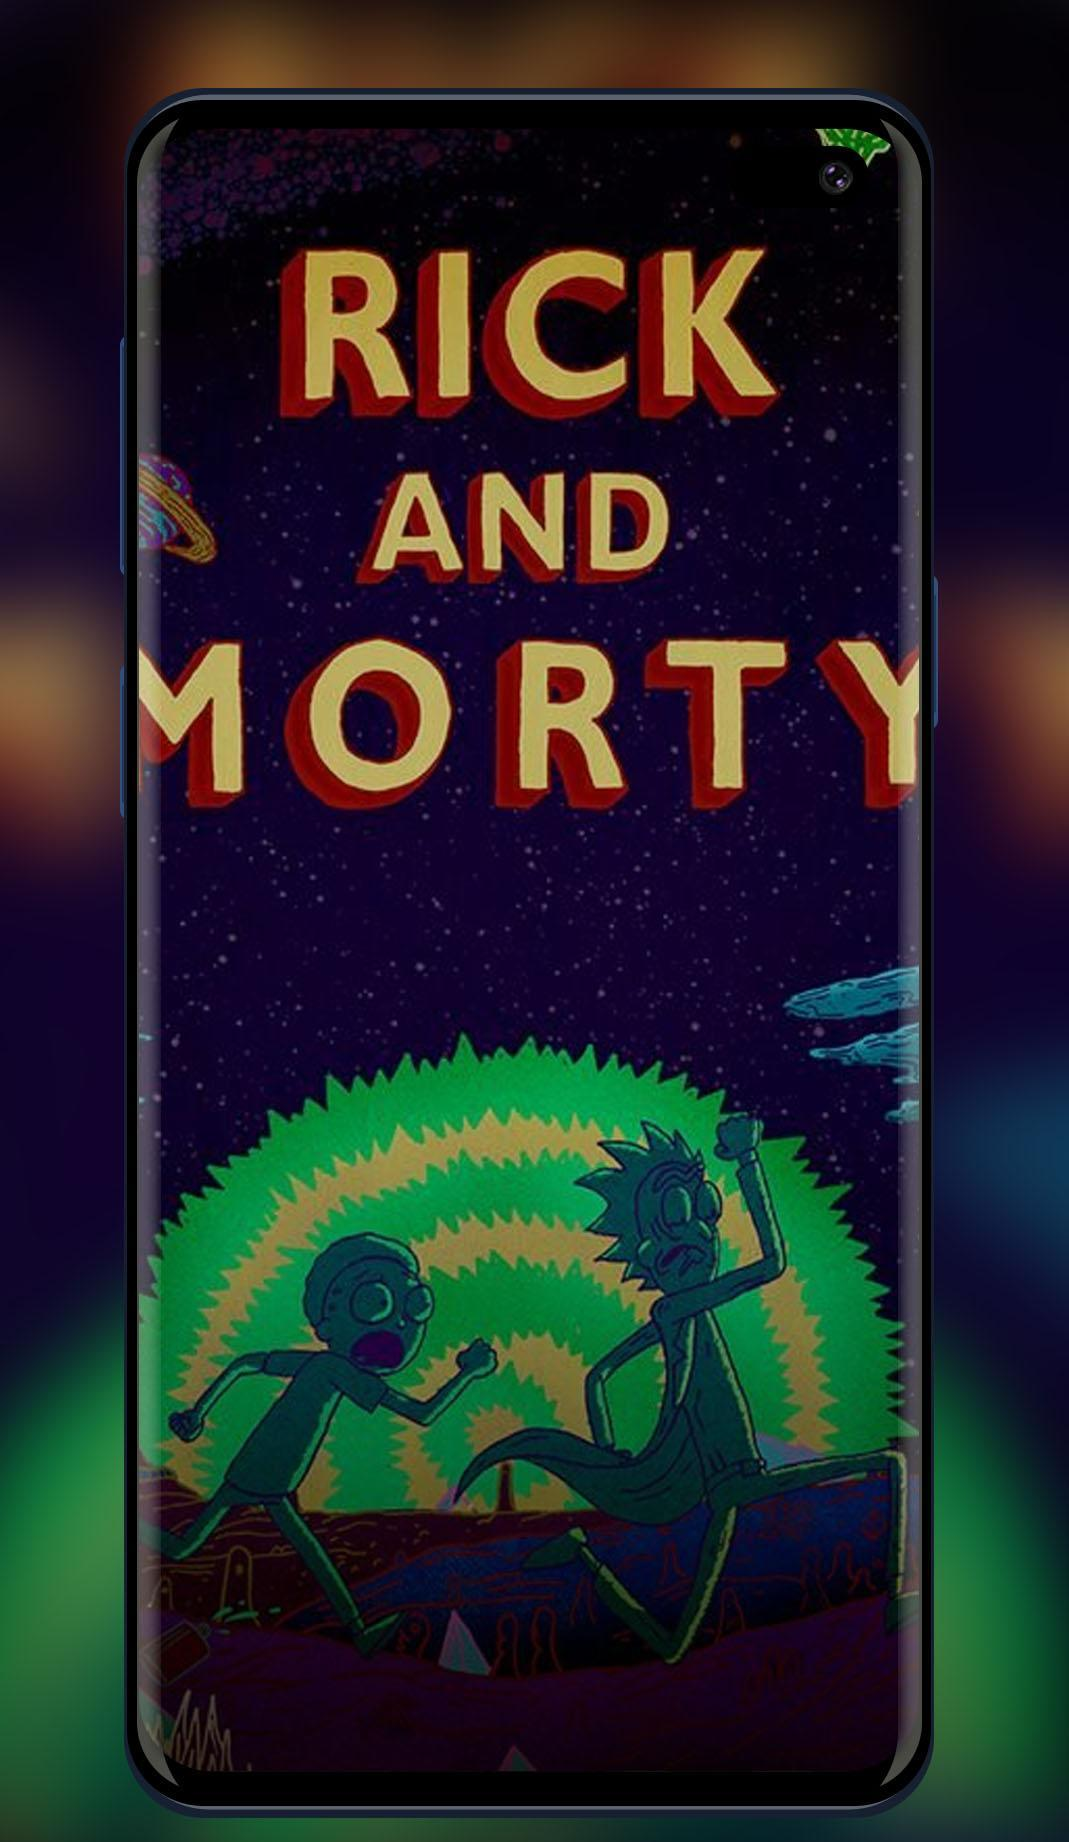 Wallpapers for Rick Morty Animated for Android - APK Download